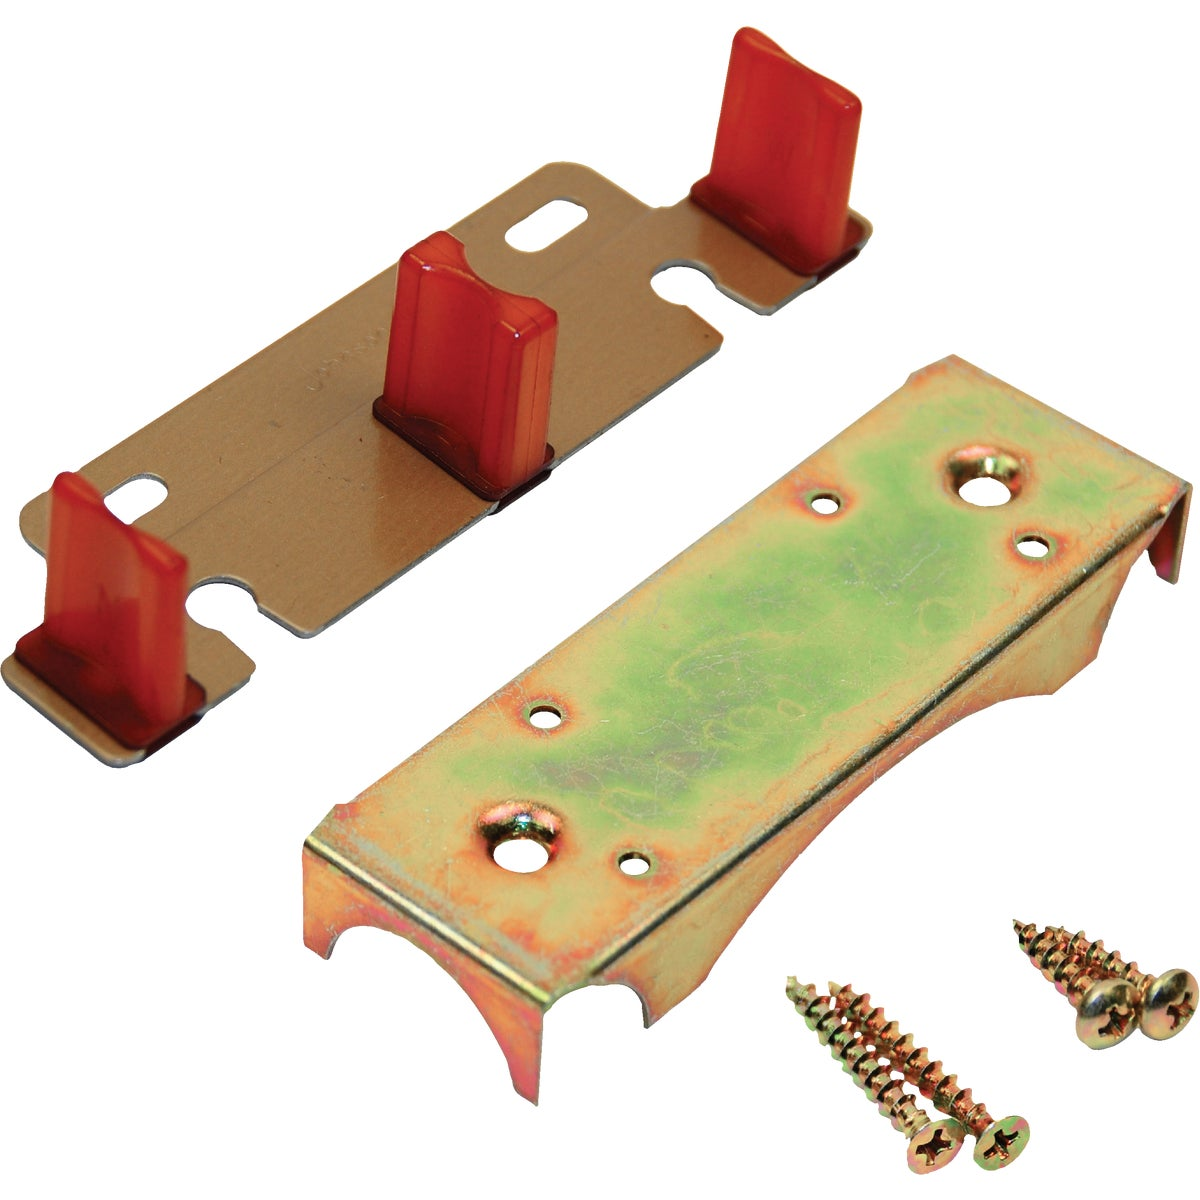 GUIDE/RISER SET - 2156PPK3 by Johnson Products